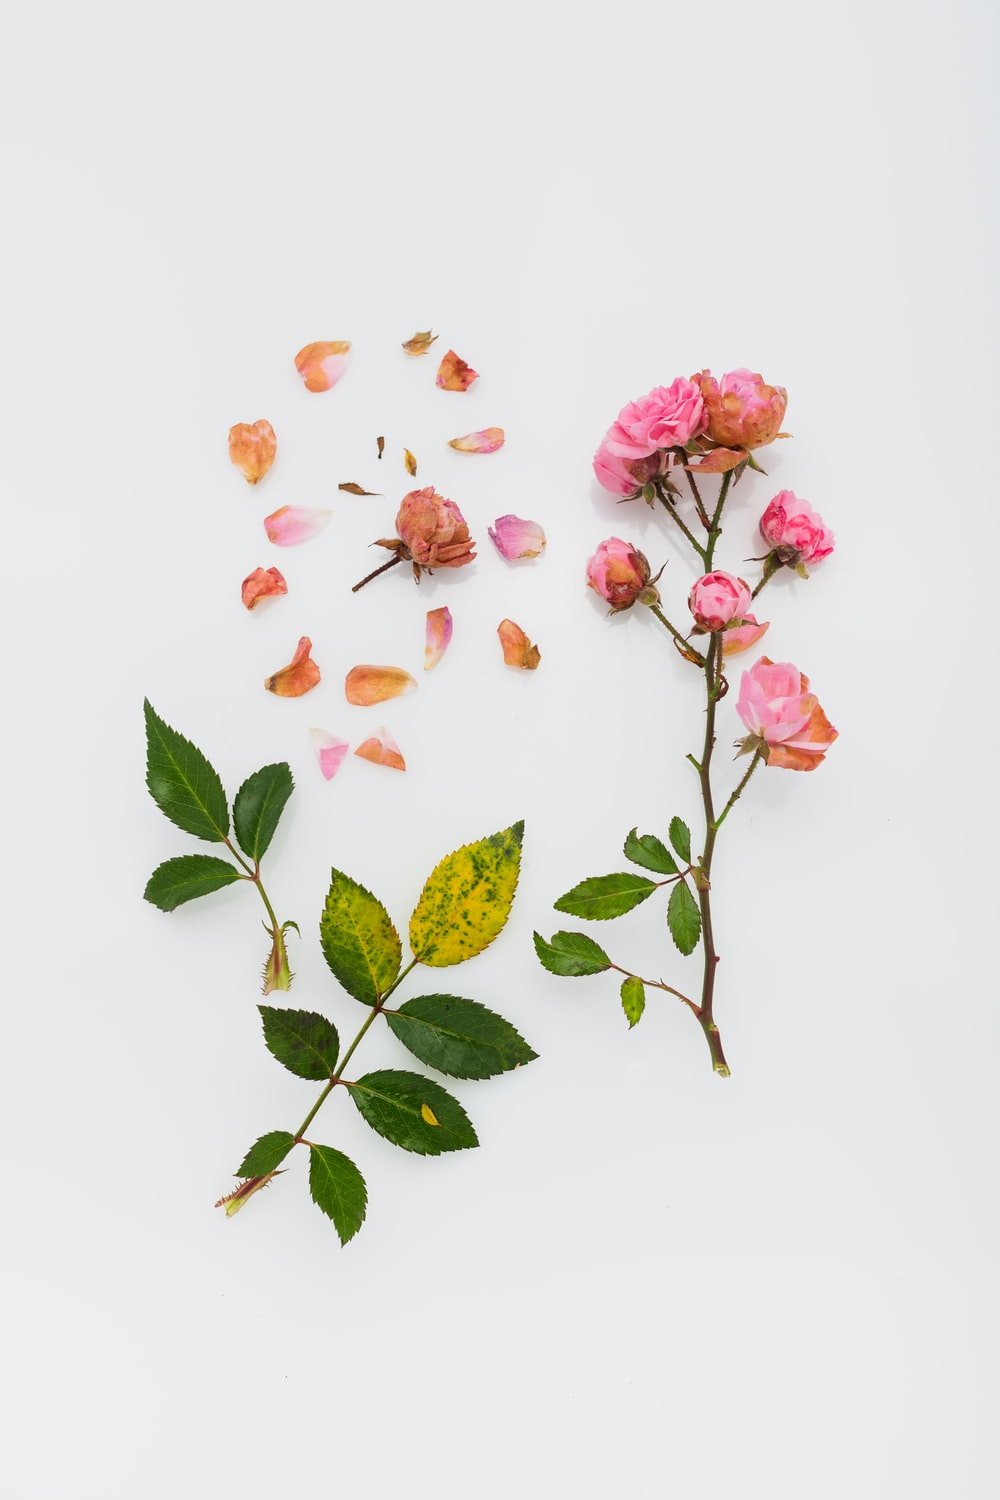 pink petaled flowers on white surface